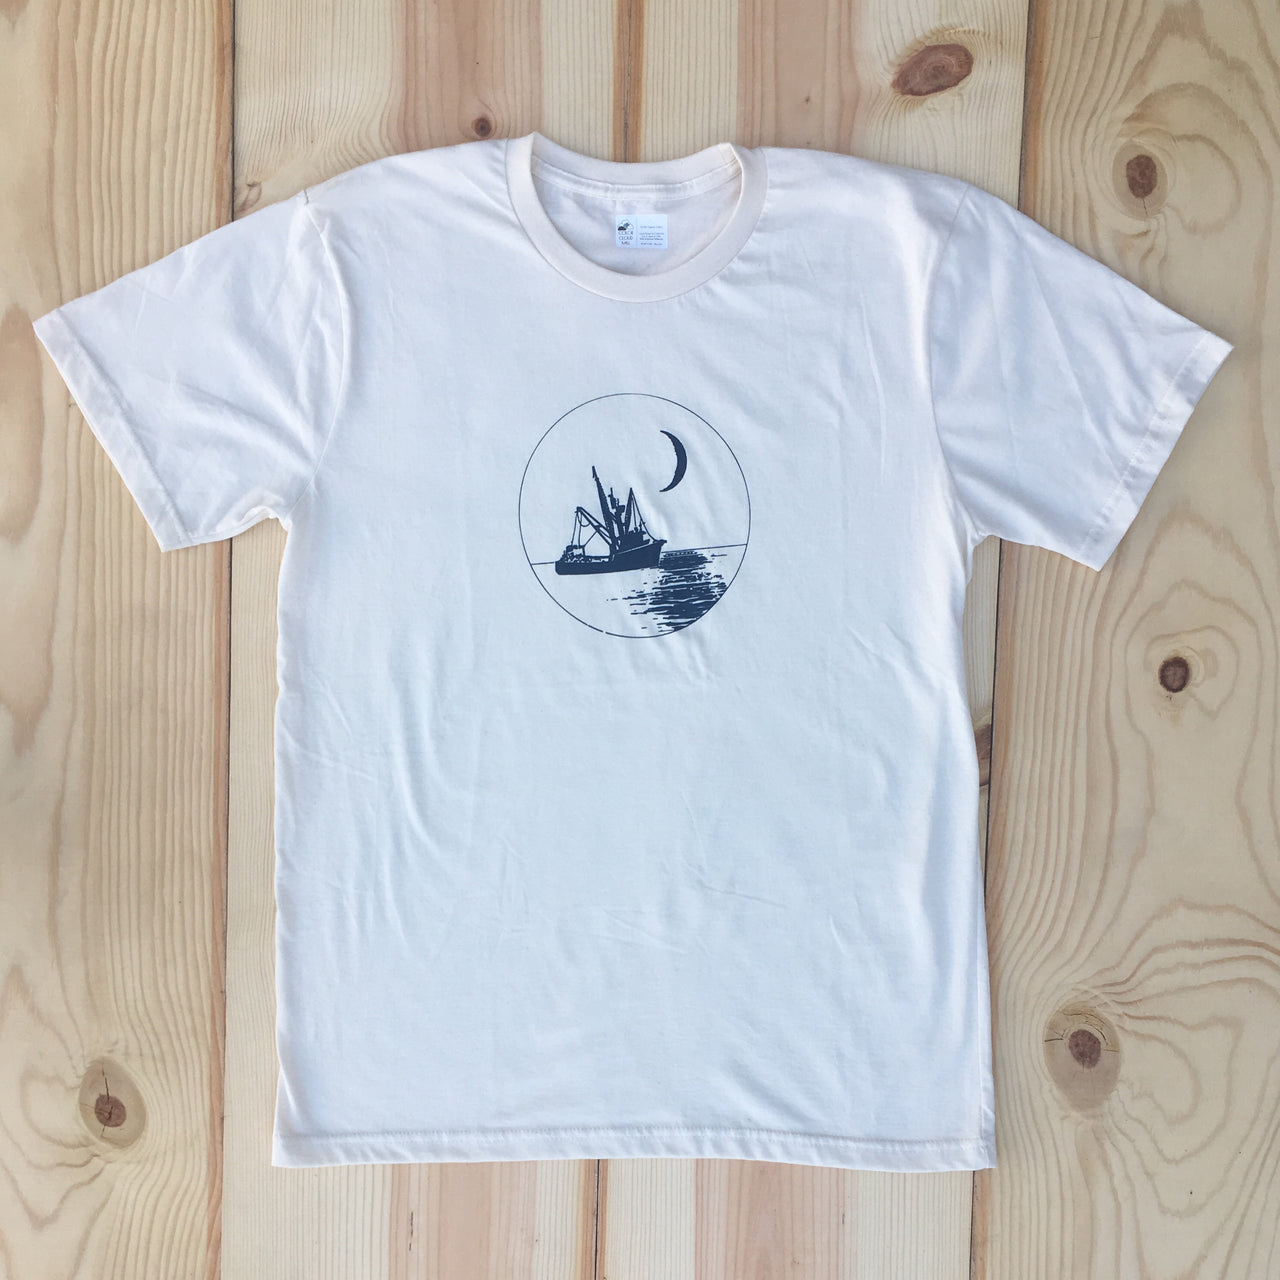 The BOAT Tee